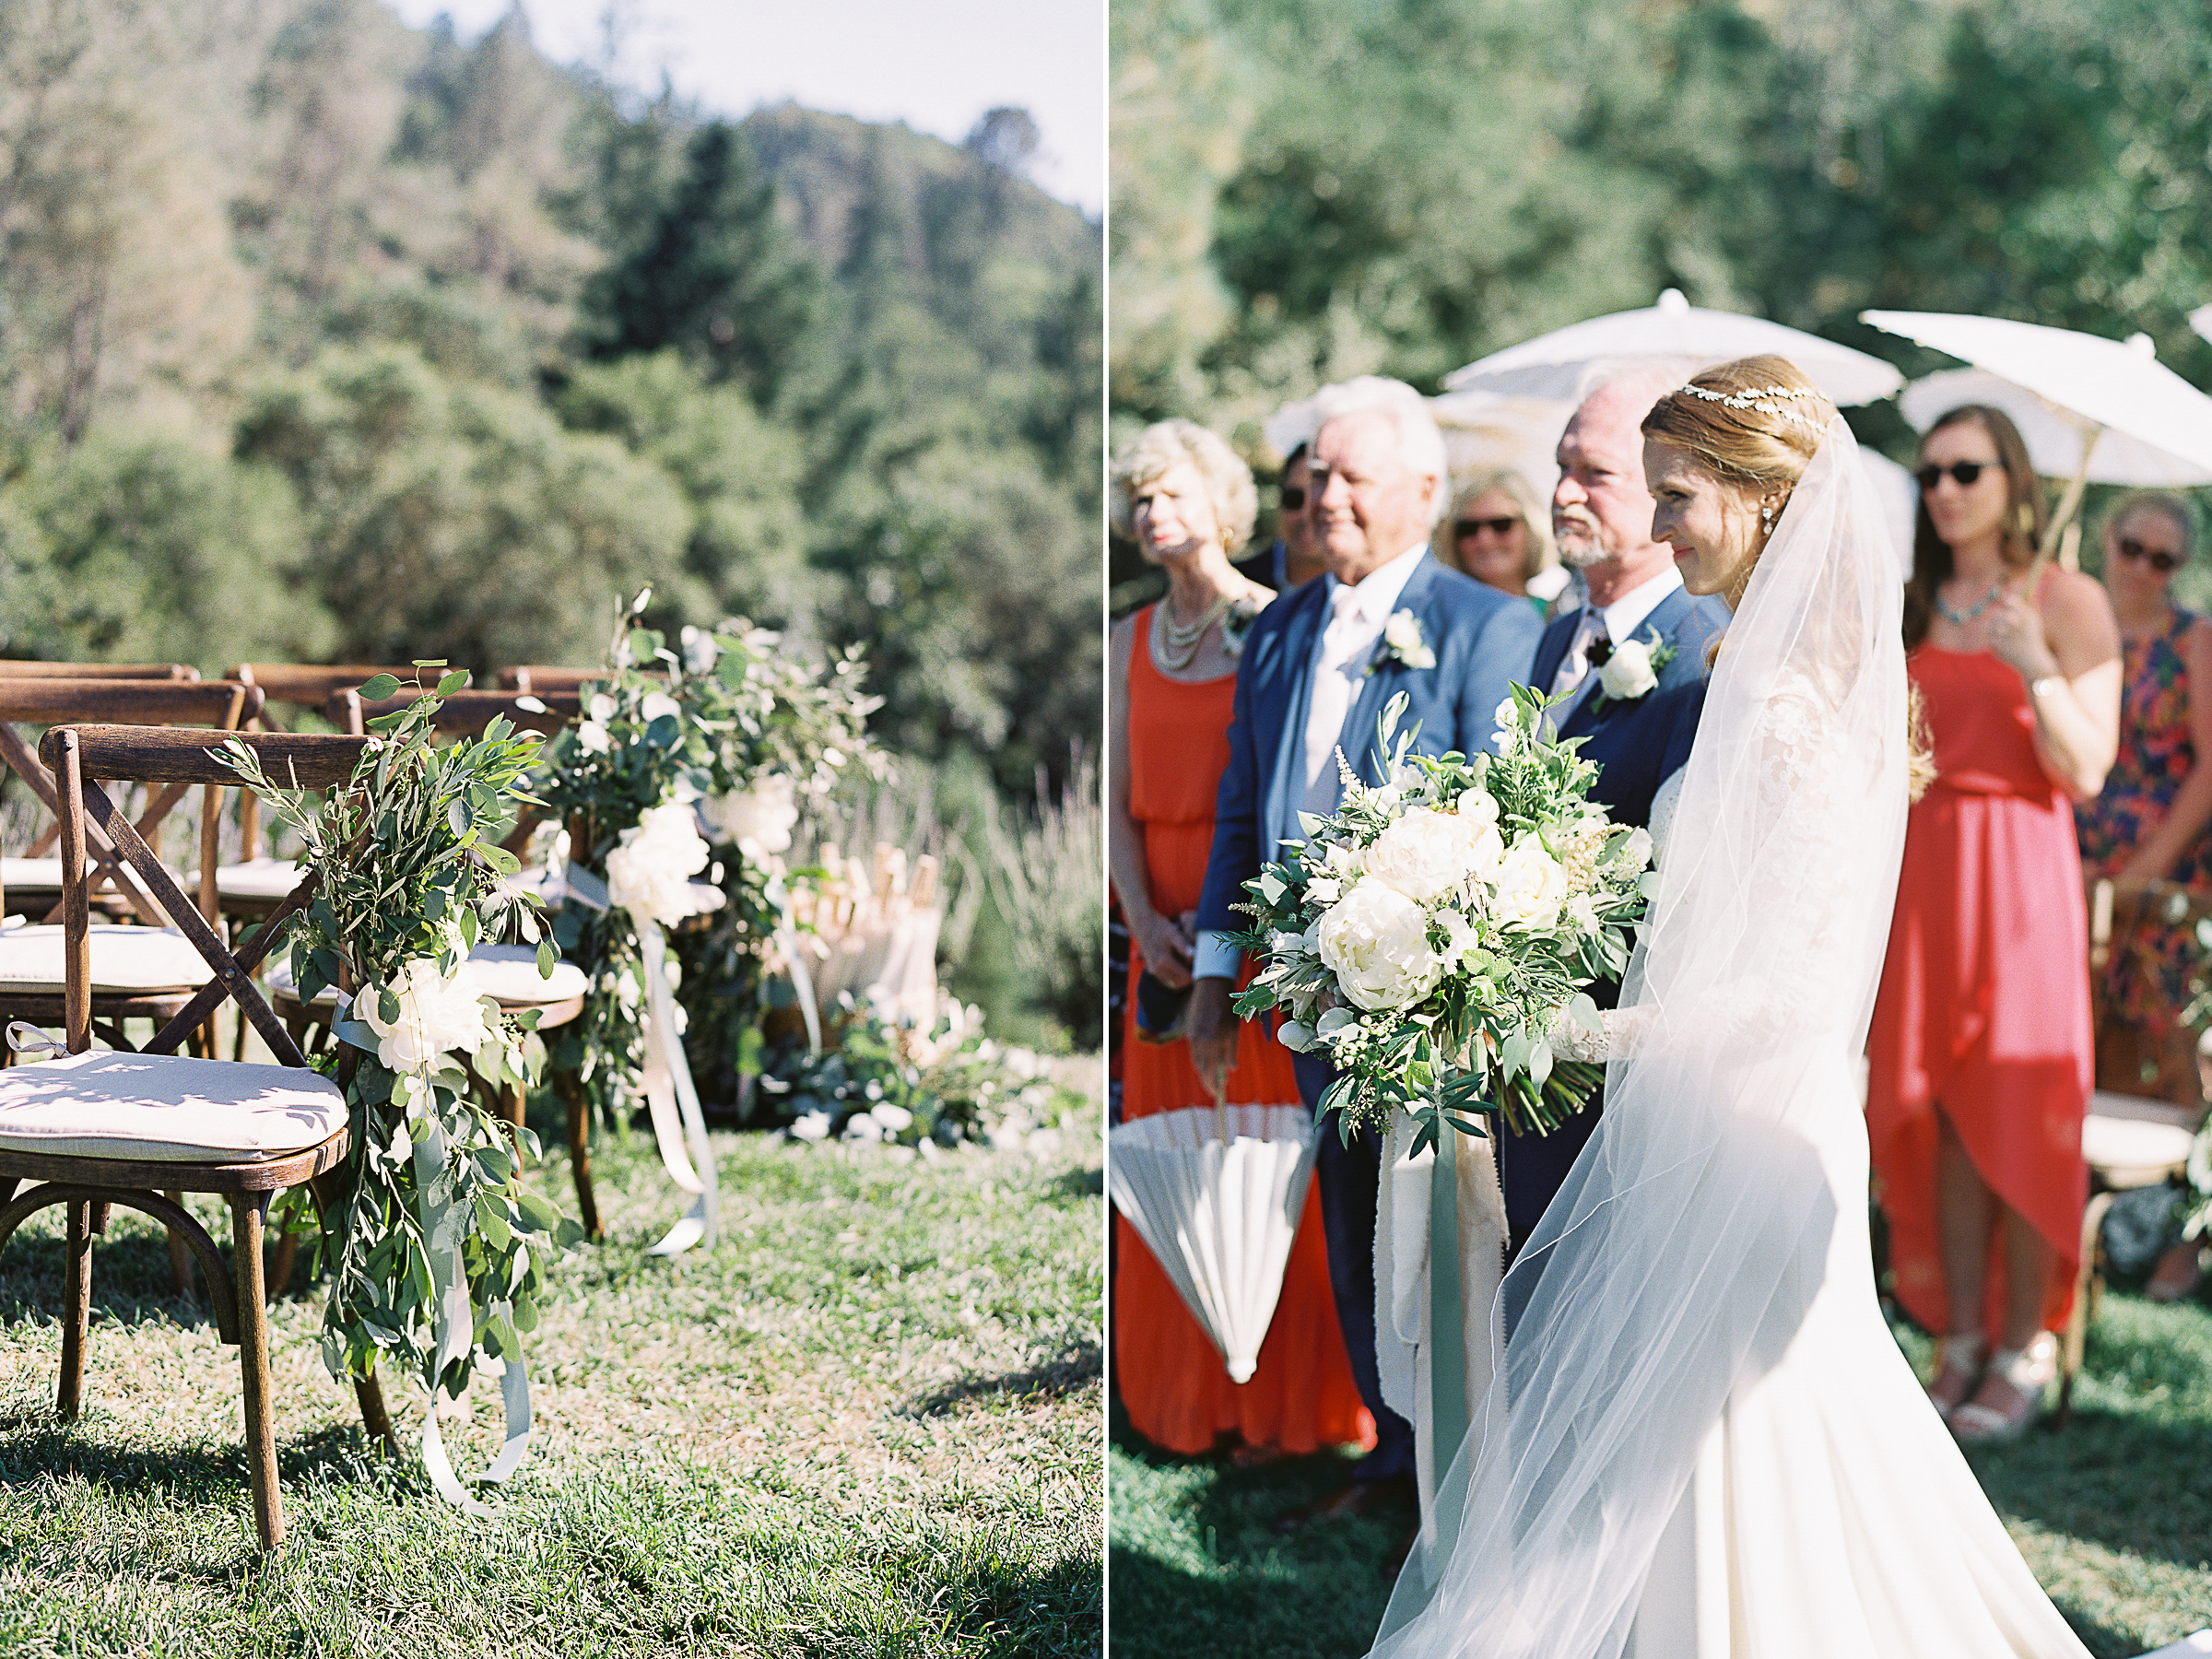 Napa Wedding Photographer - Meghan Mehan Photography _032.jpg